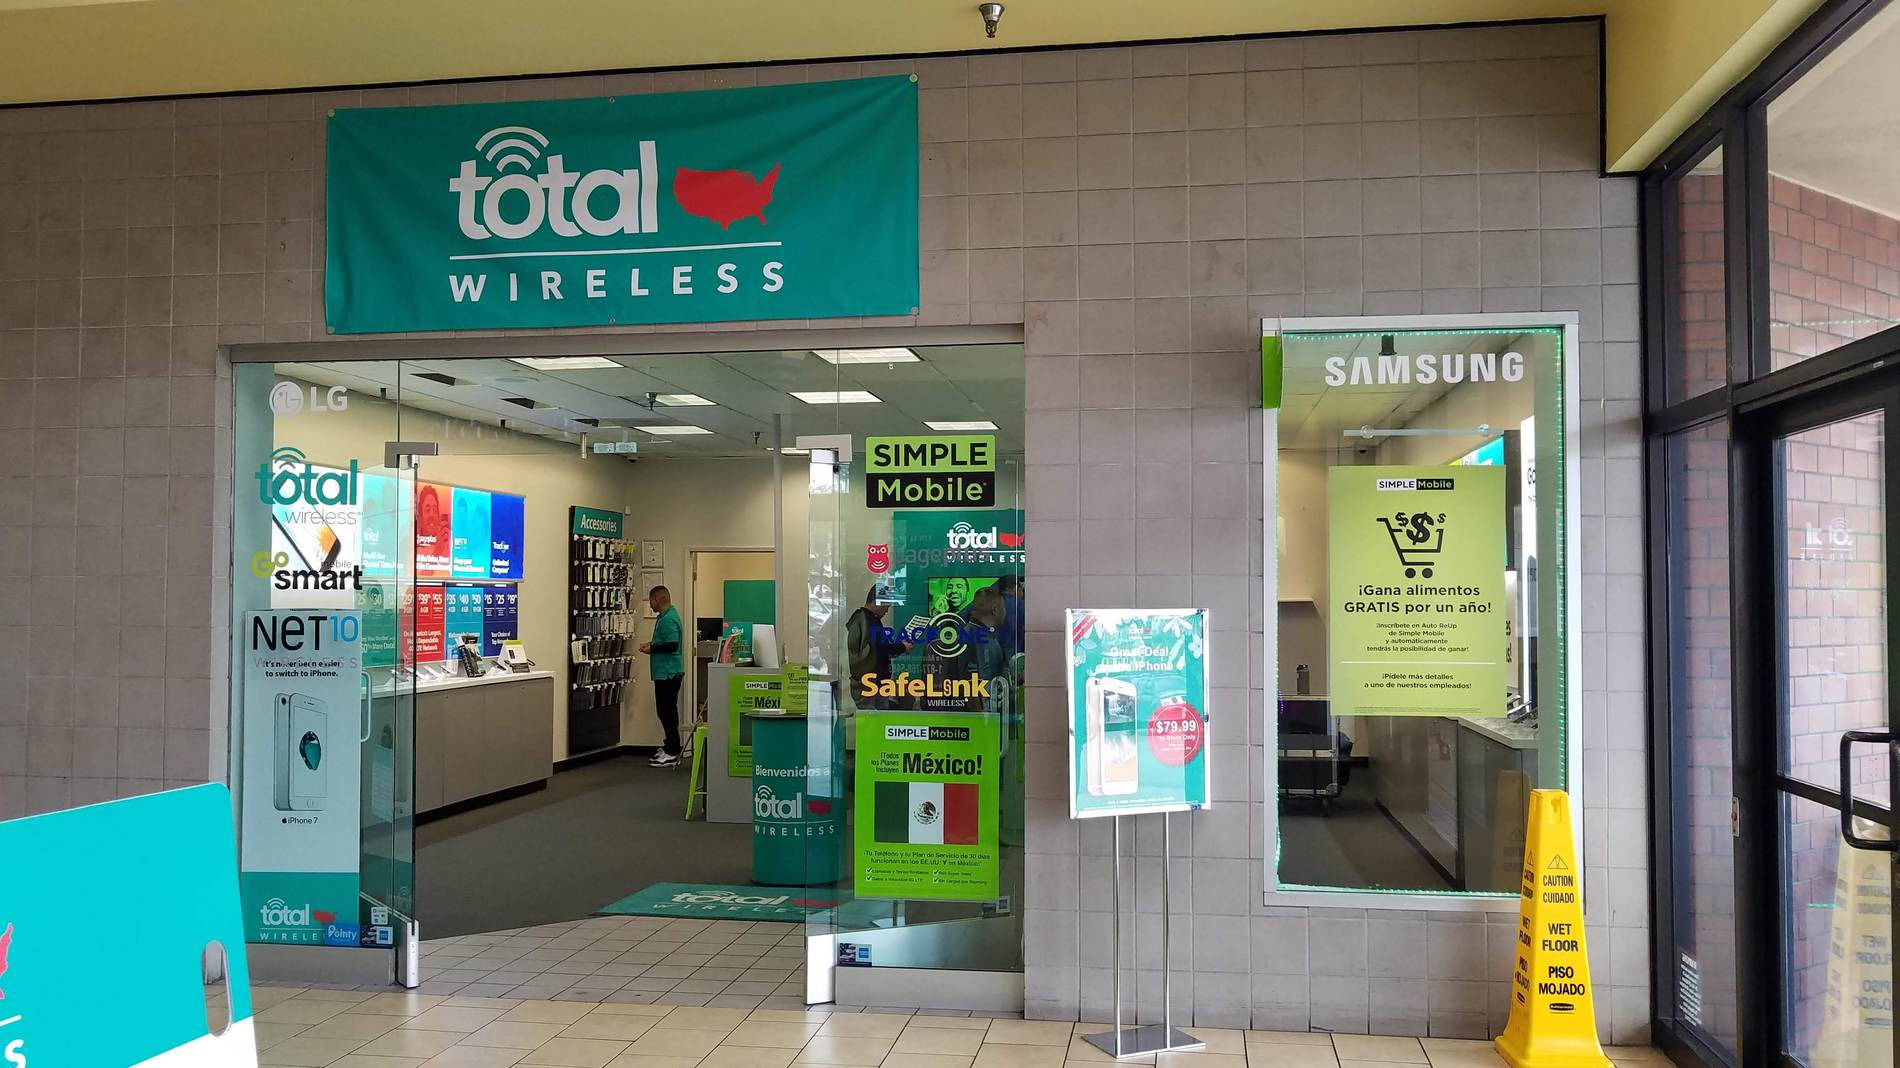 Total Wireless Store front image in Panorama City,  CA